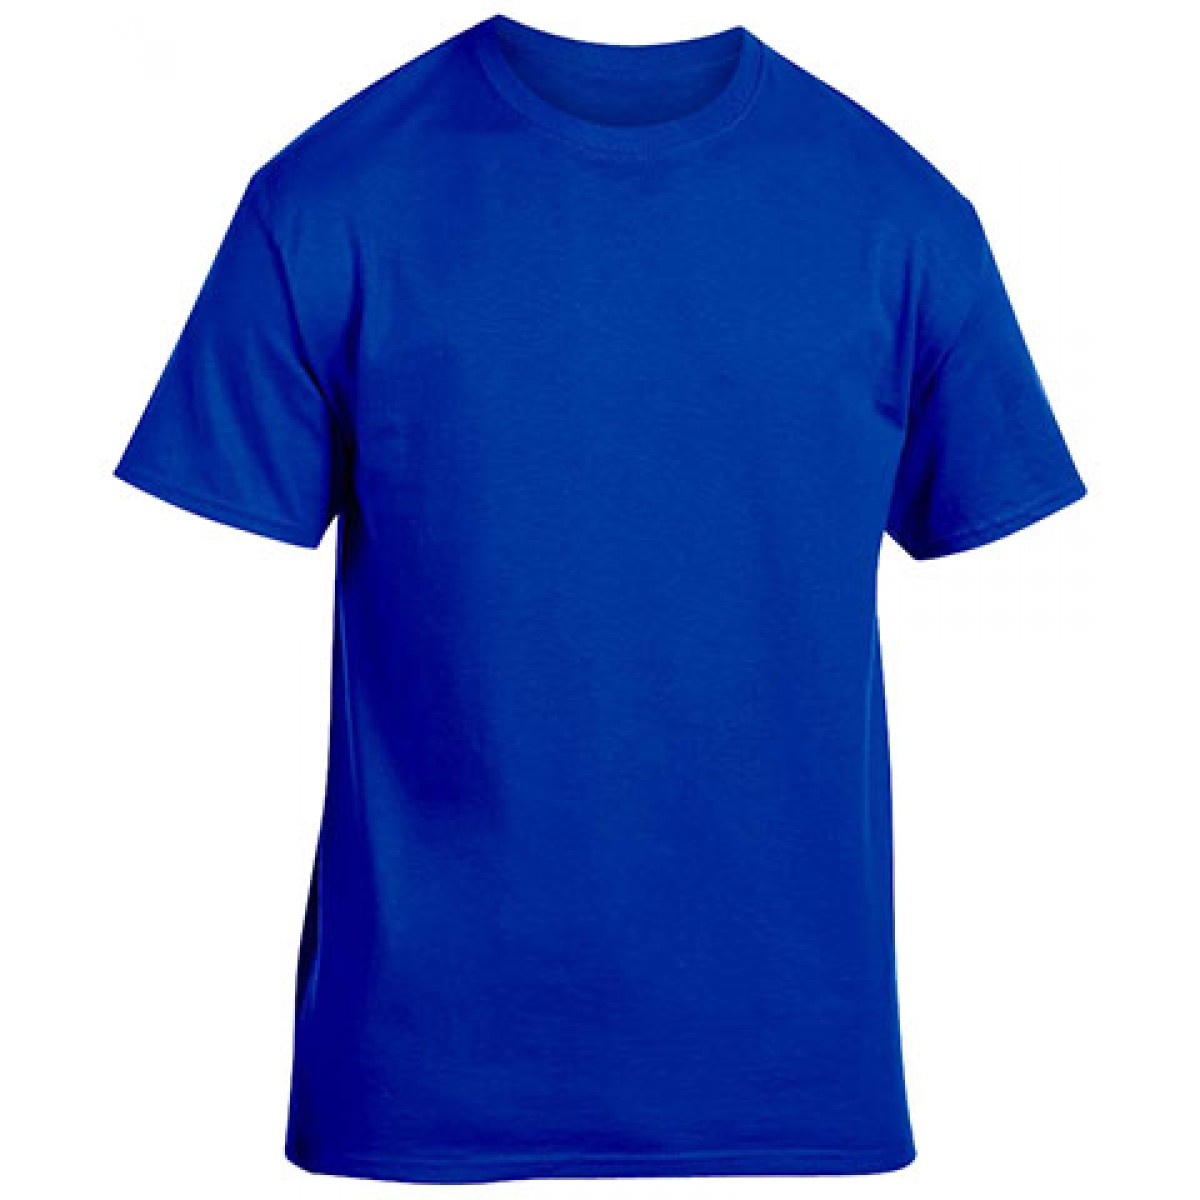 Heavy Cotton Activewear T-Shirt-Royal Blue-L